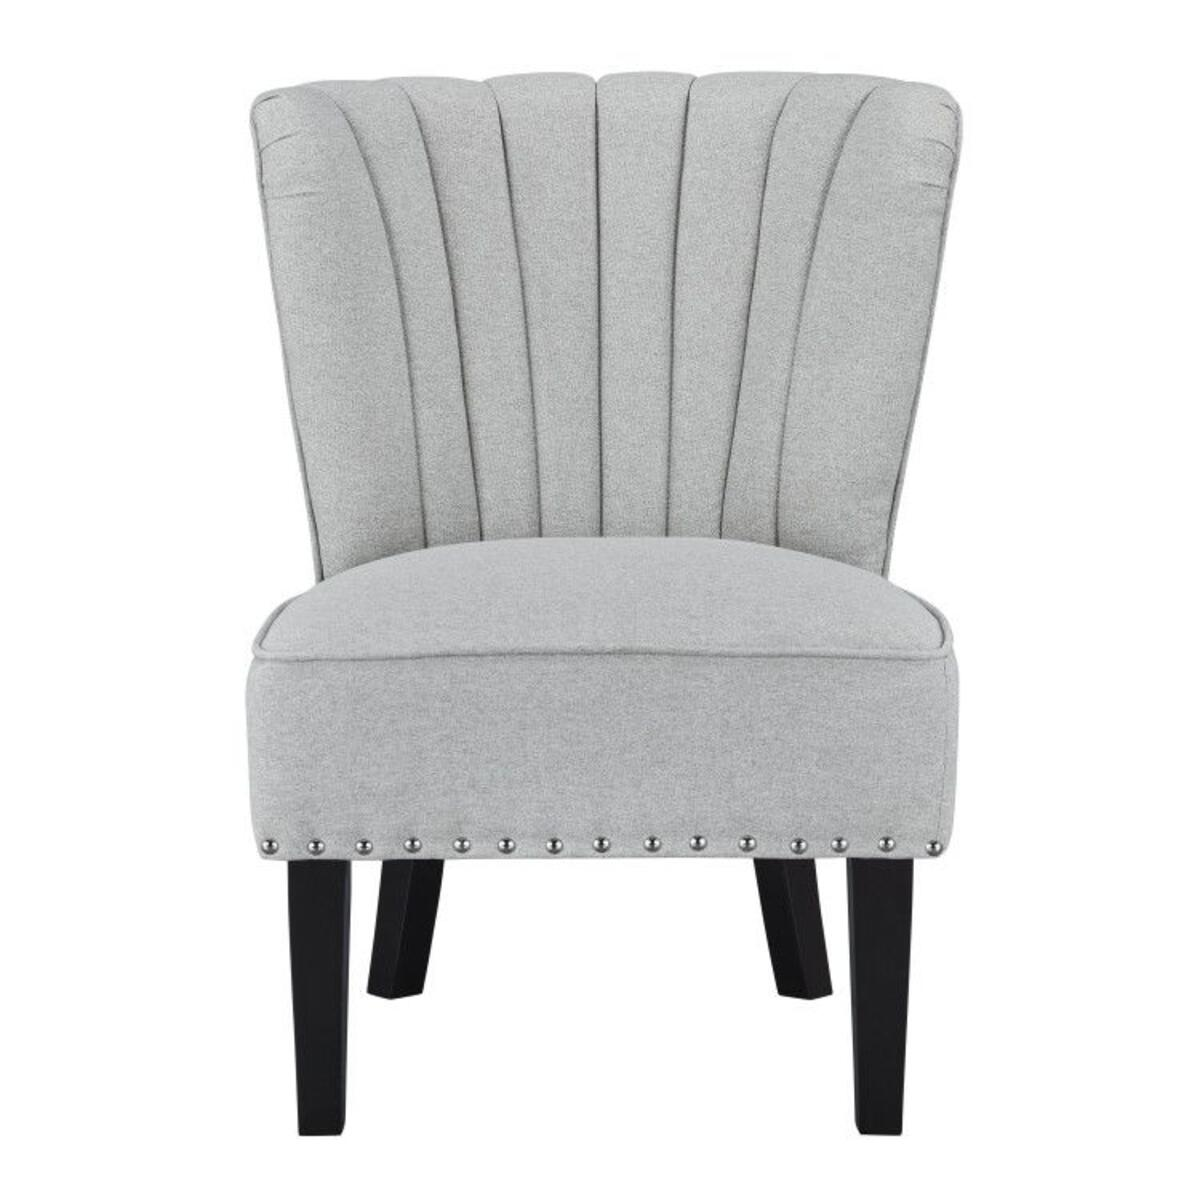 Emporium Accent Chair, Greystone